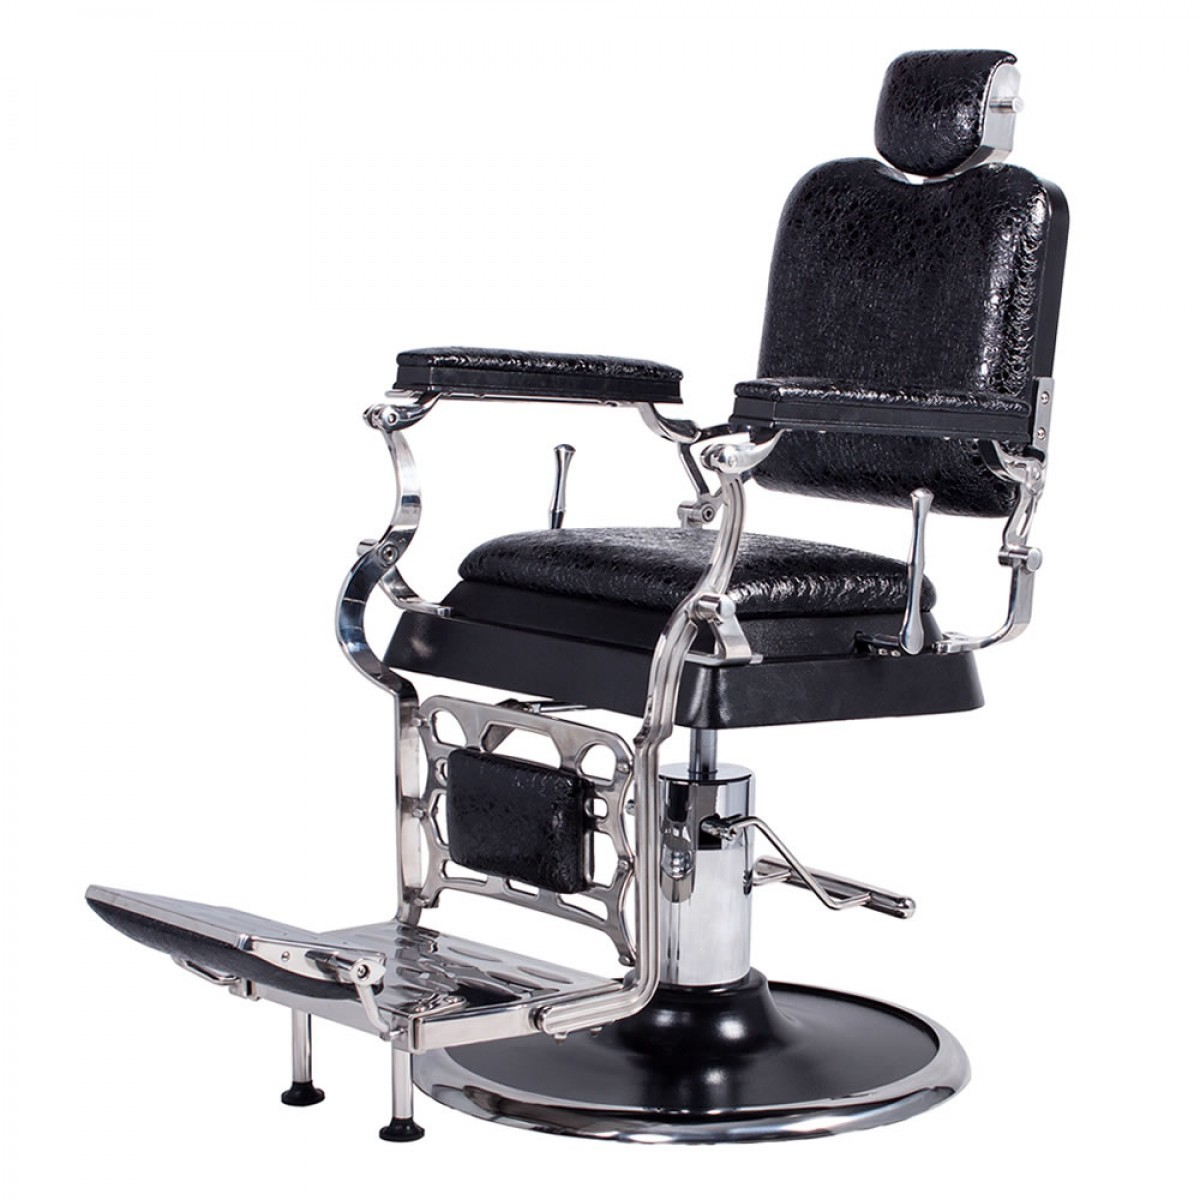 Quot Emperor Quot Barber Chair Barber Chairs Barber Shop Chairs